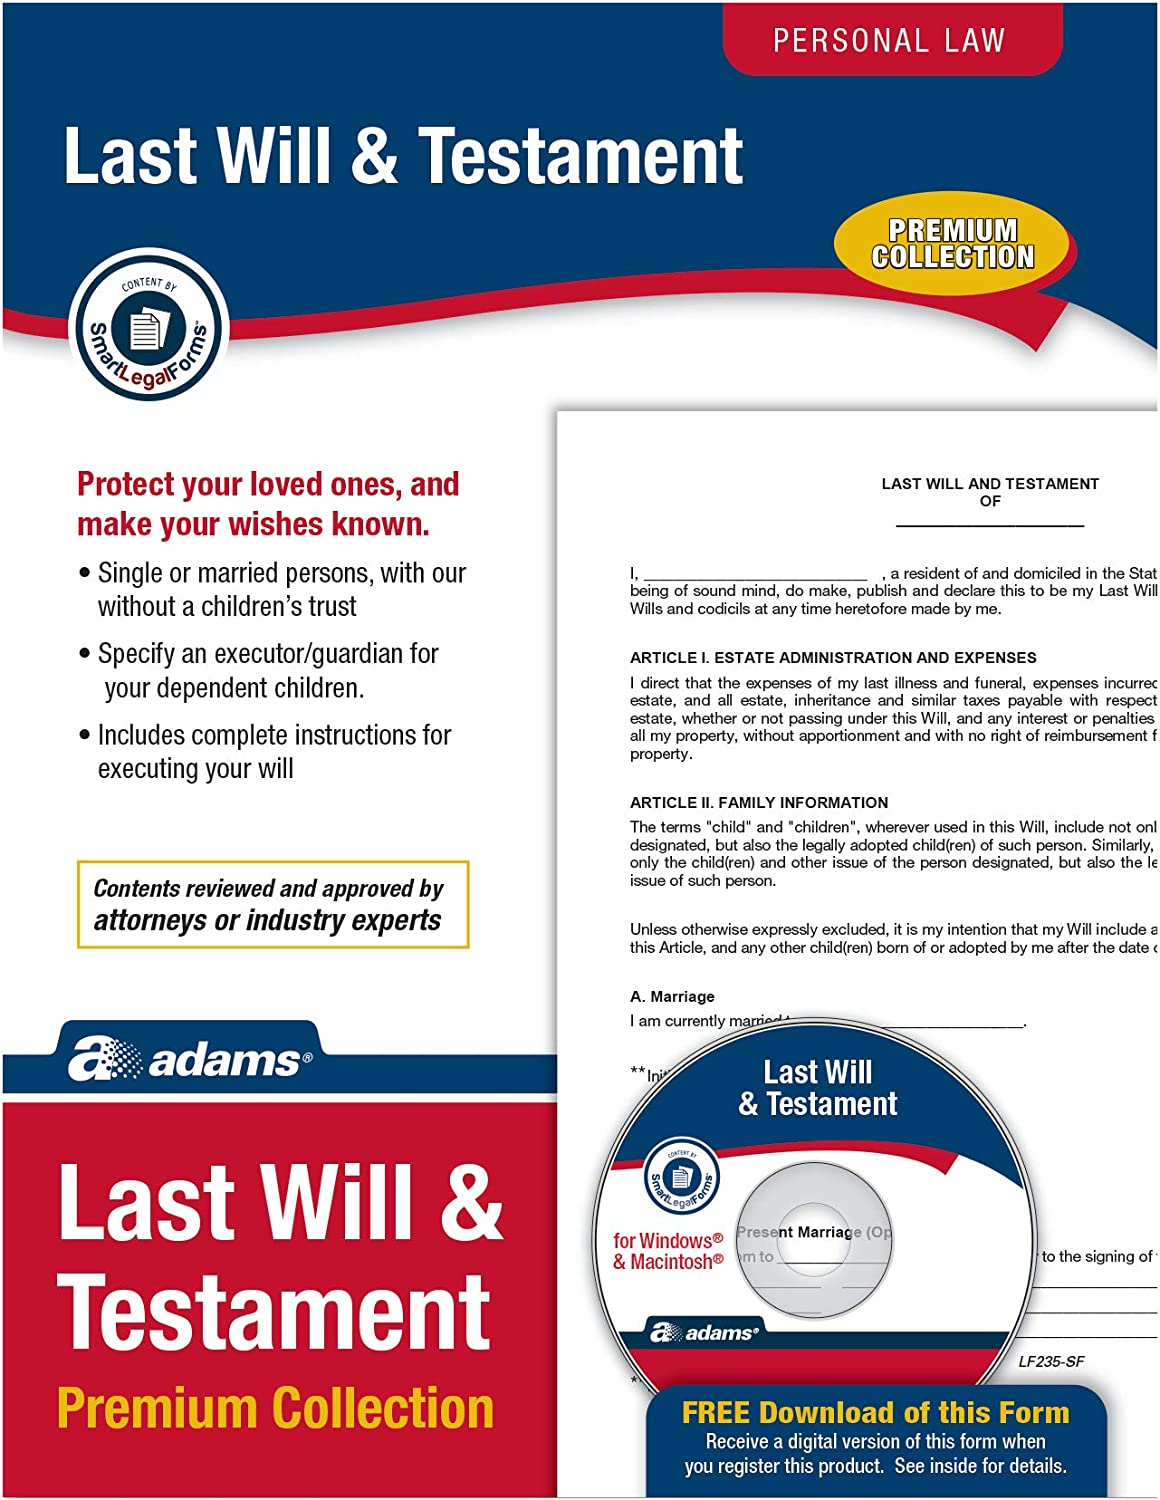 "Adams Last Will & Testament Premium Collection, Forms and Instructions [CD and Downloadable] (LF235), White, 11x""8.5""x0.13"""